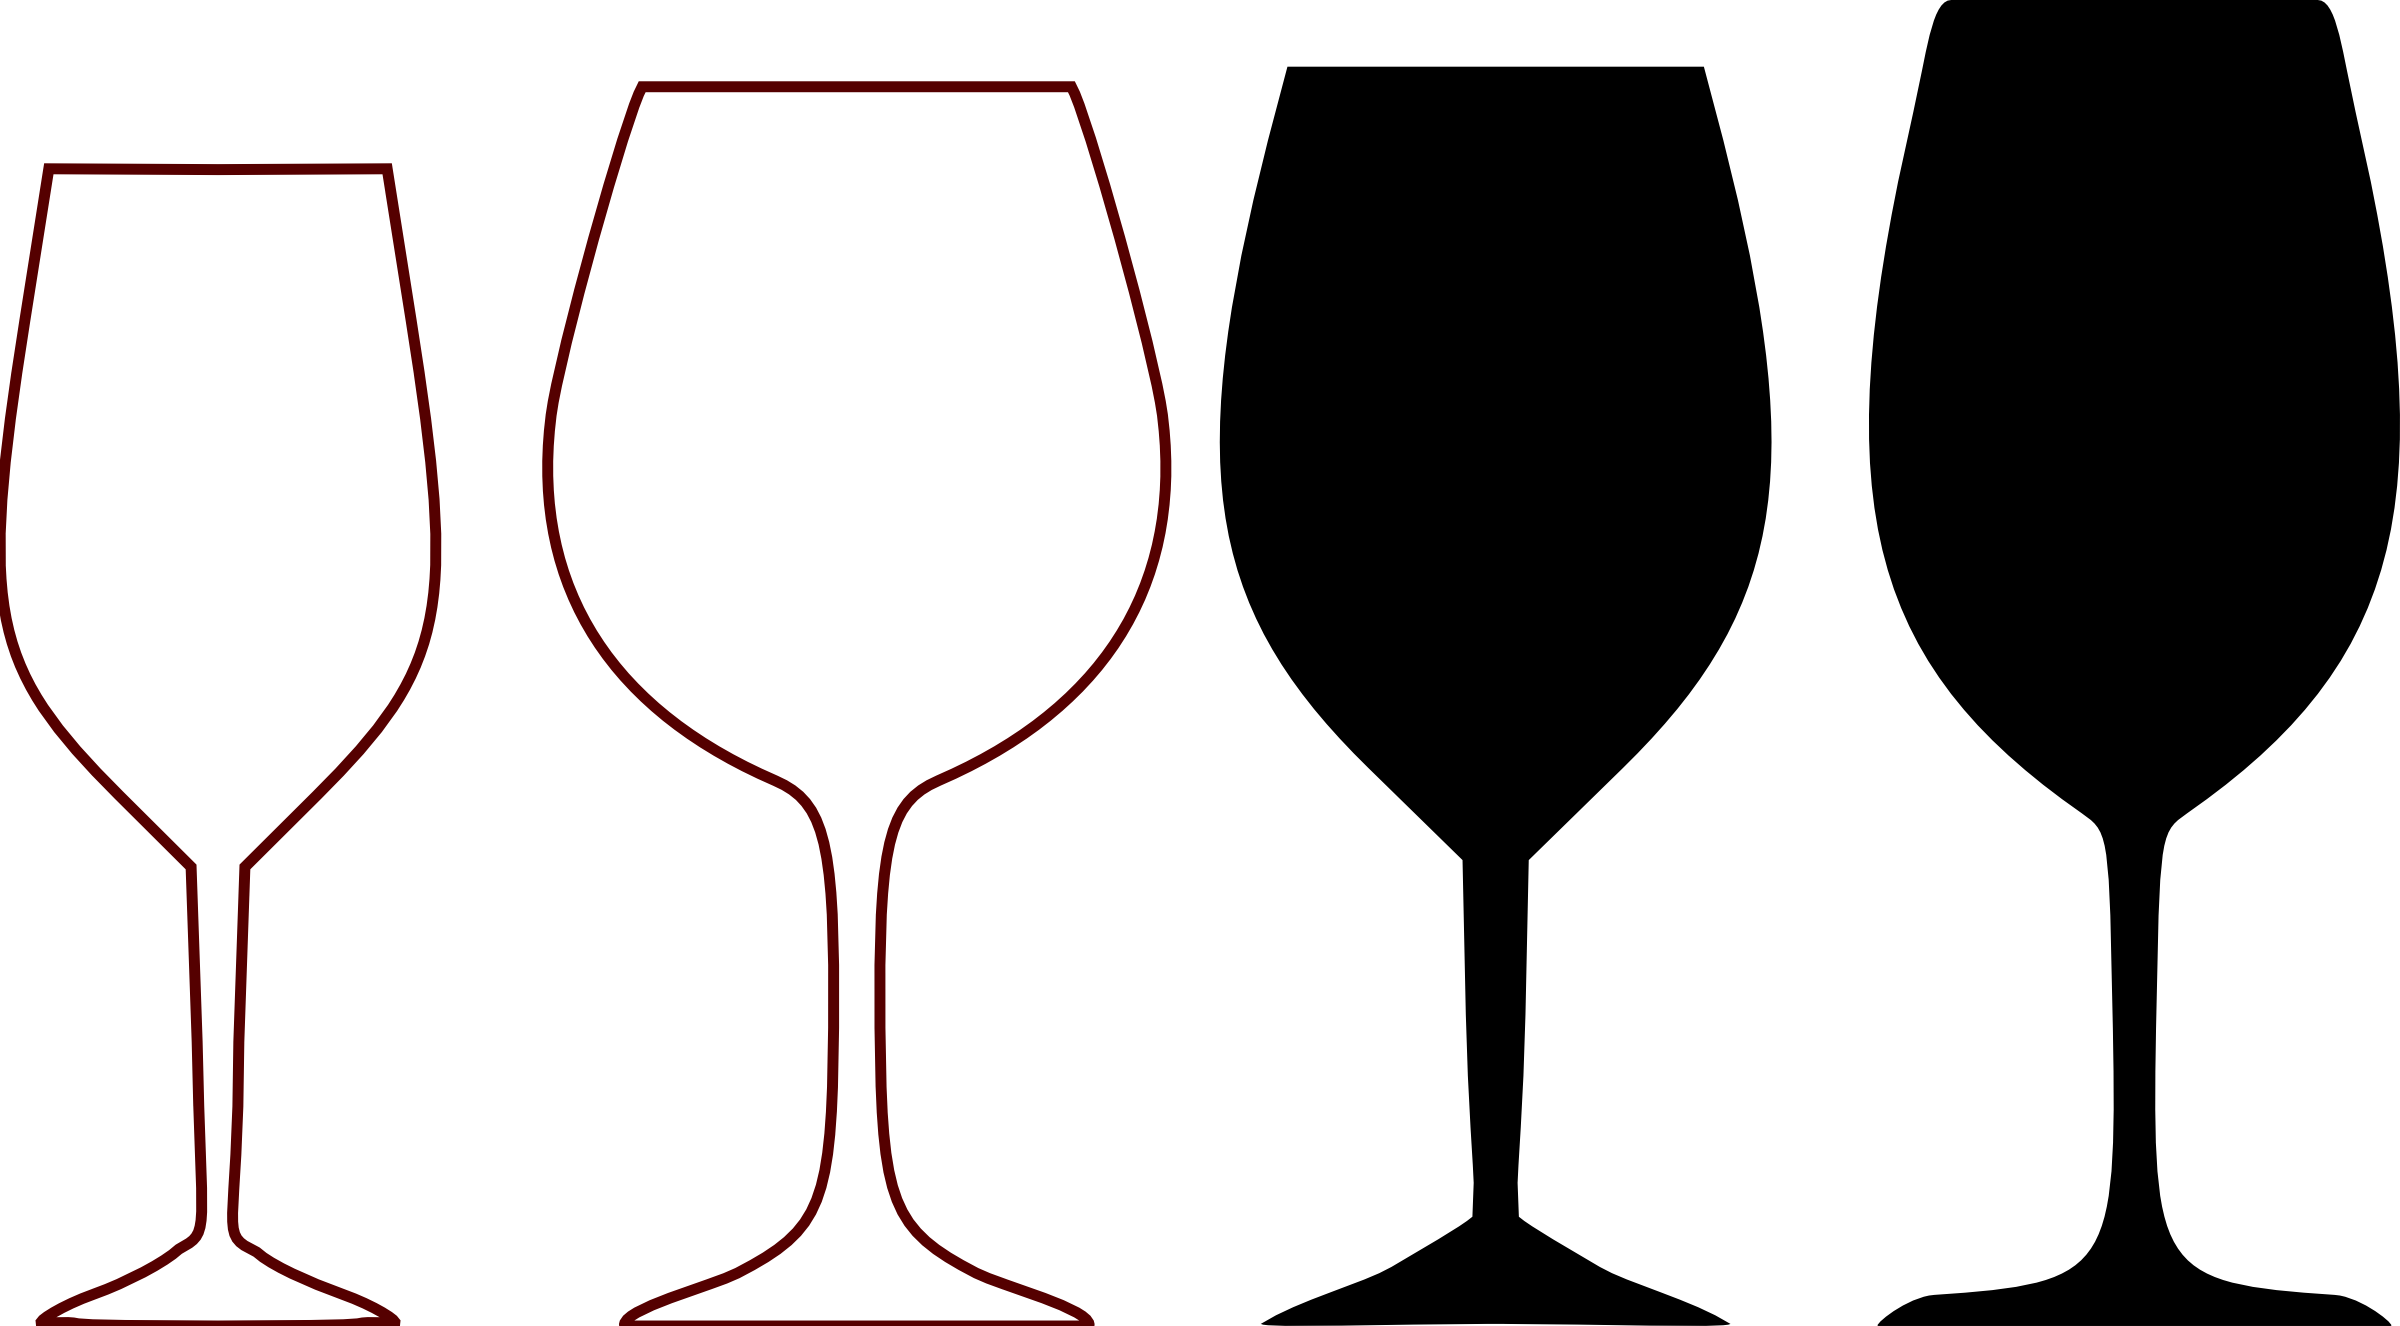 Clipart shapes elegant. Wine glass